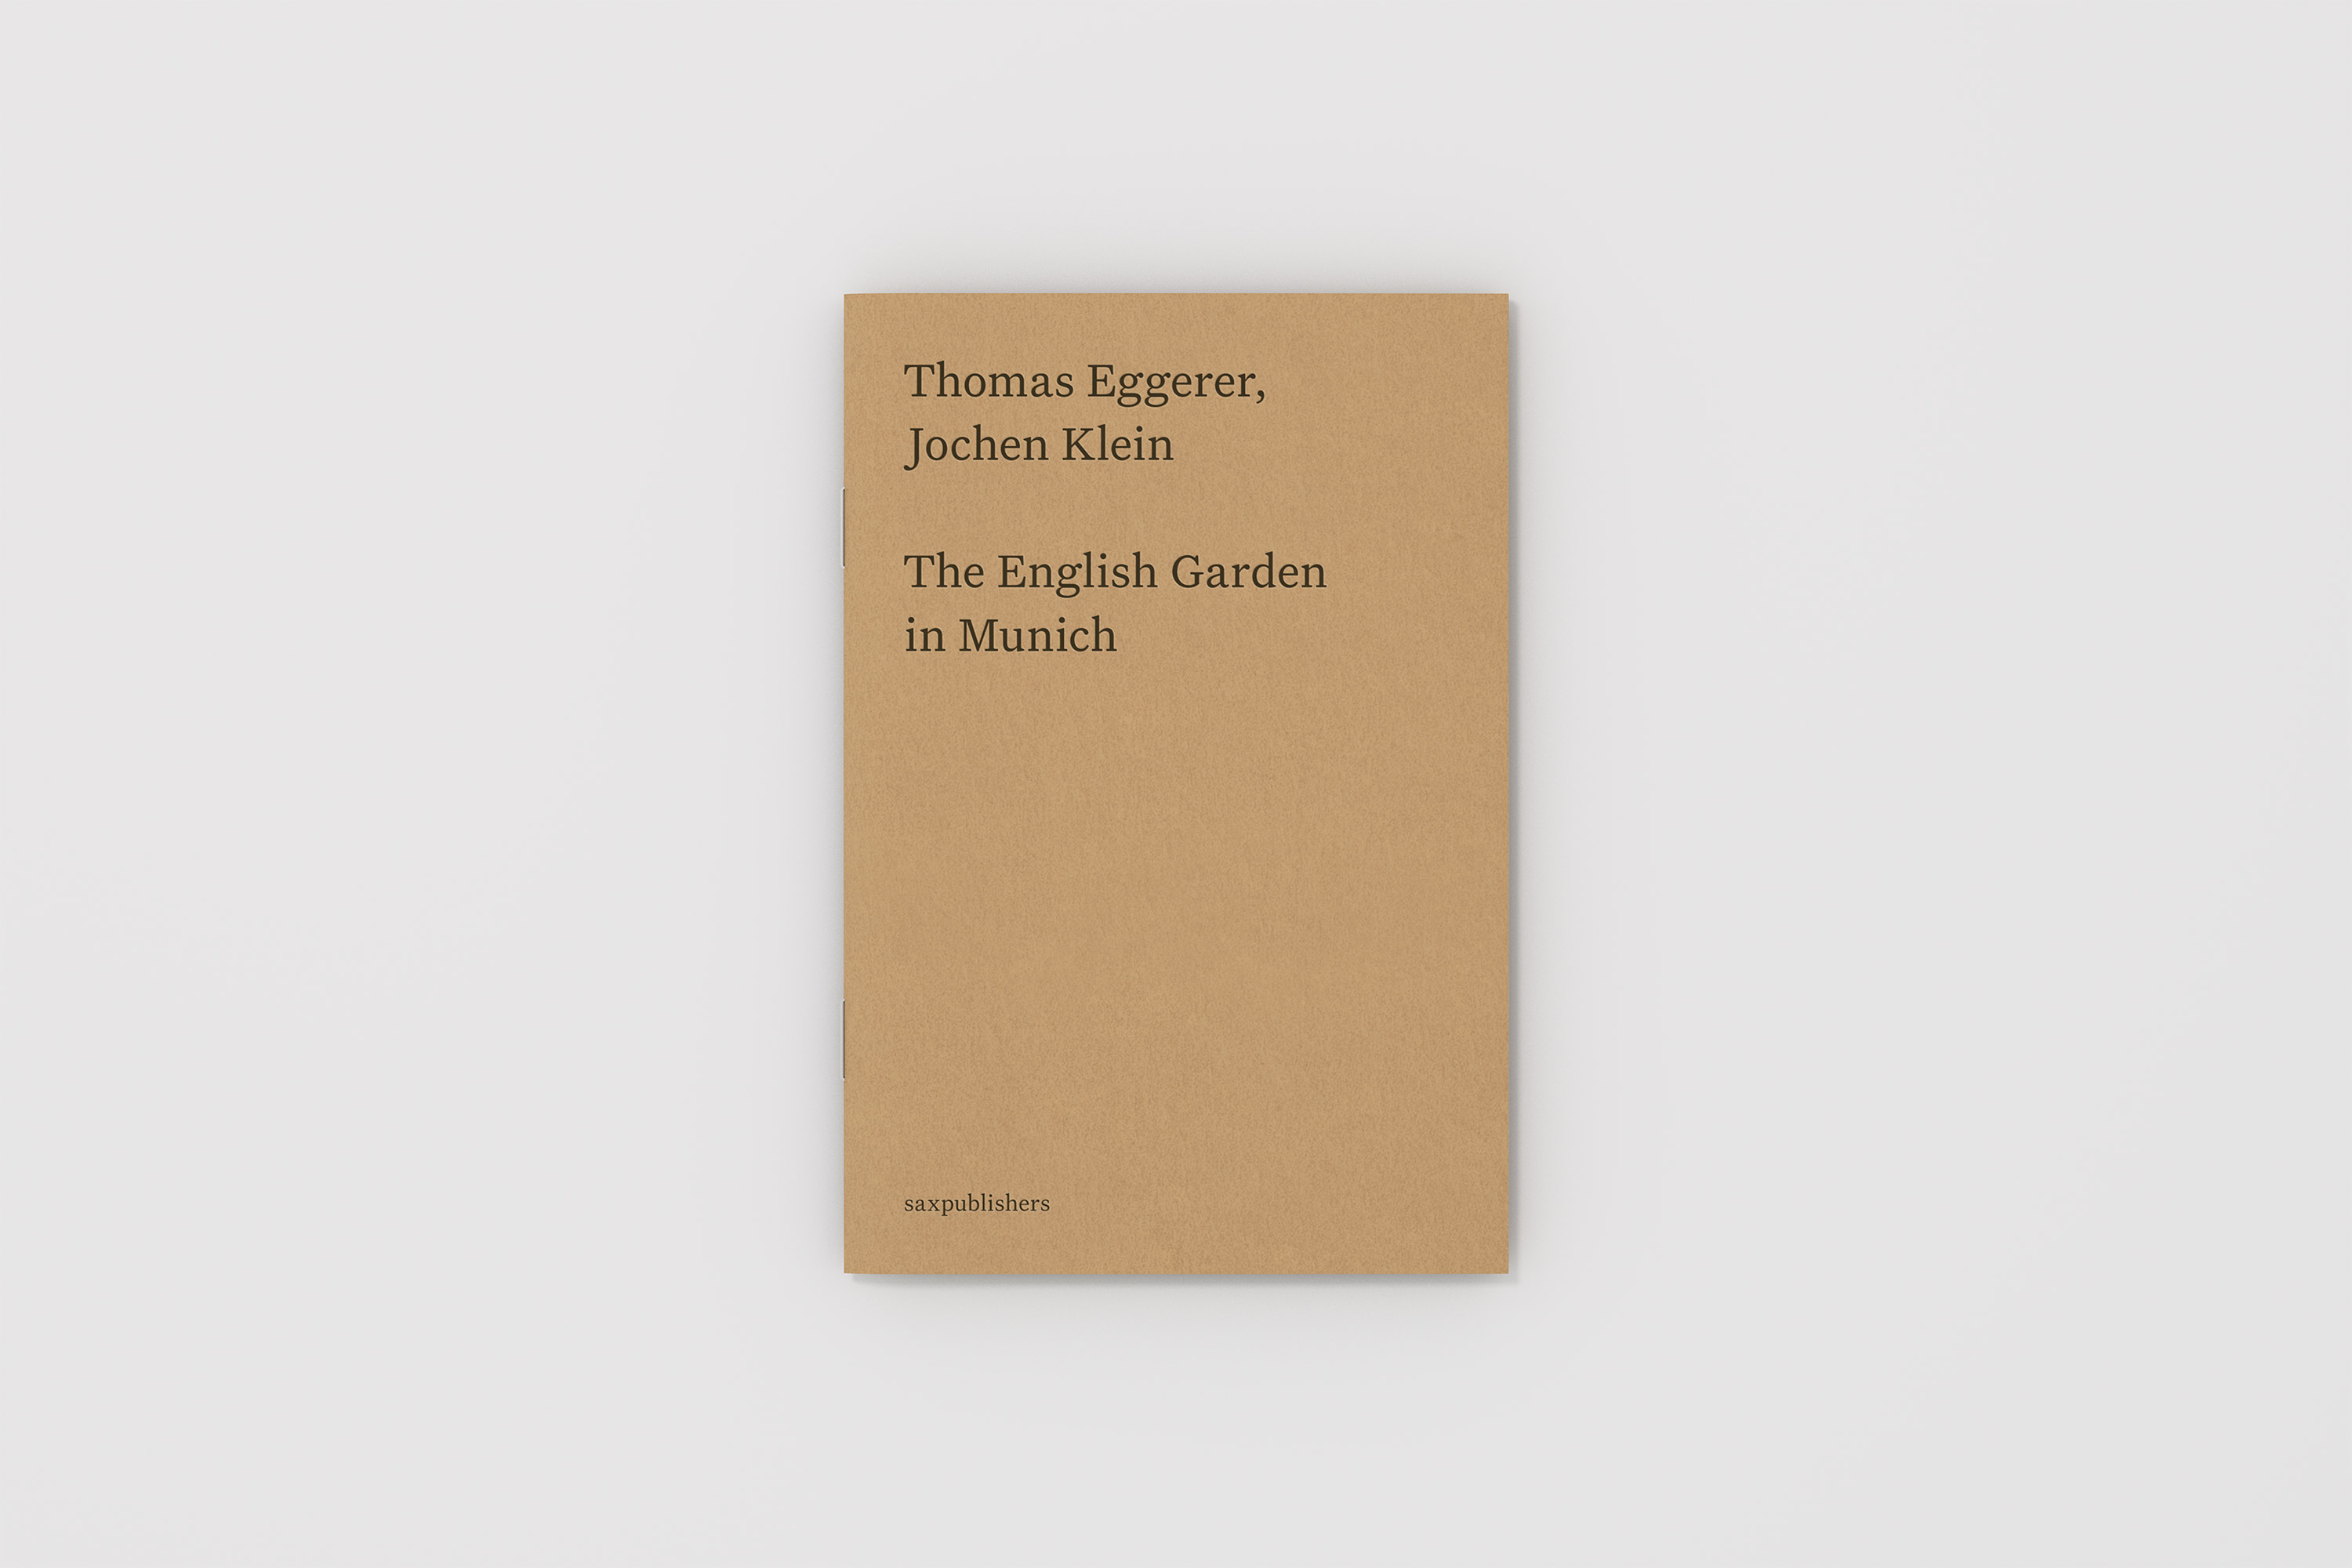 Thomas Eggerer, Jochen Klein <i>The English Garden in Munich</i>, 1994/2017